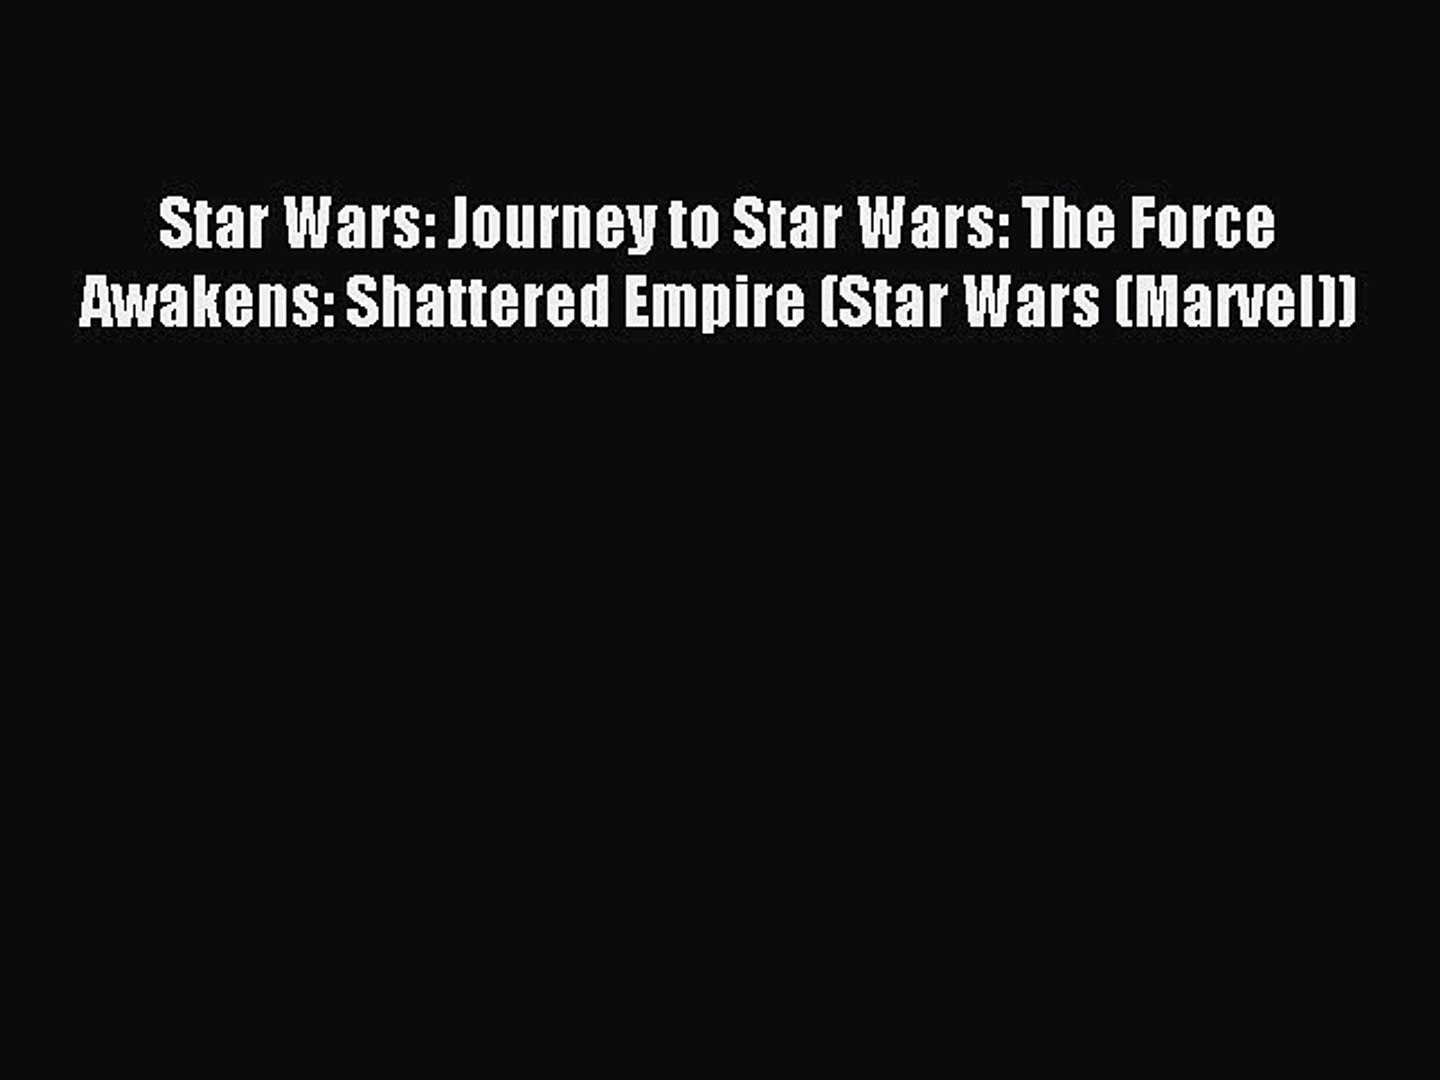 Read Star Wars: Journey to Star Wars: The Force Awakens: Shattered Empire (Star Wars (Marvel))